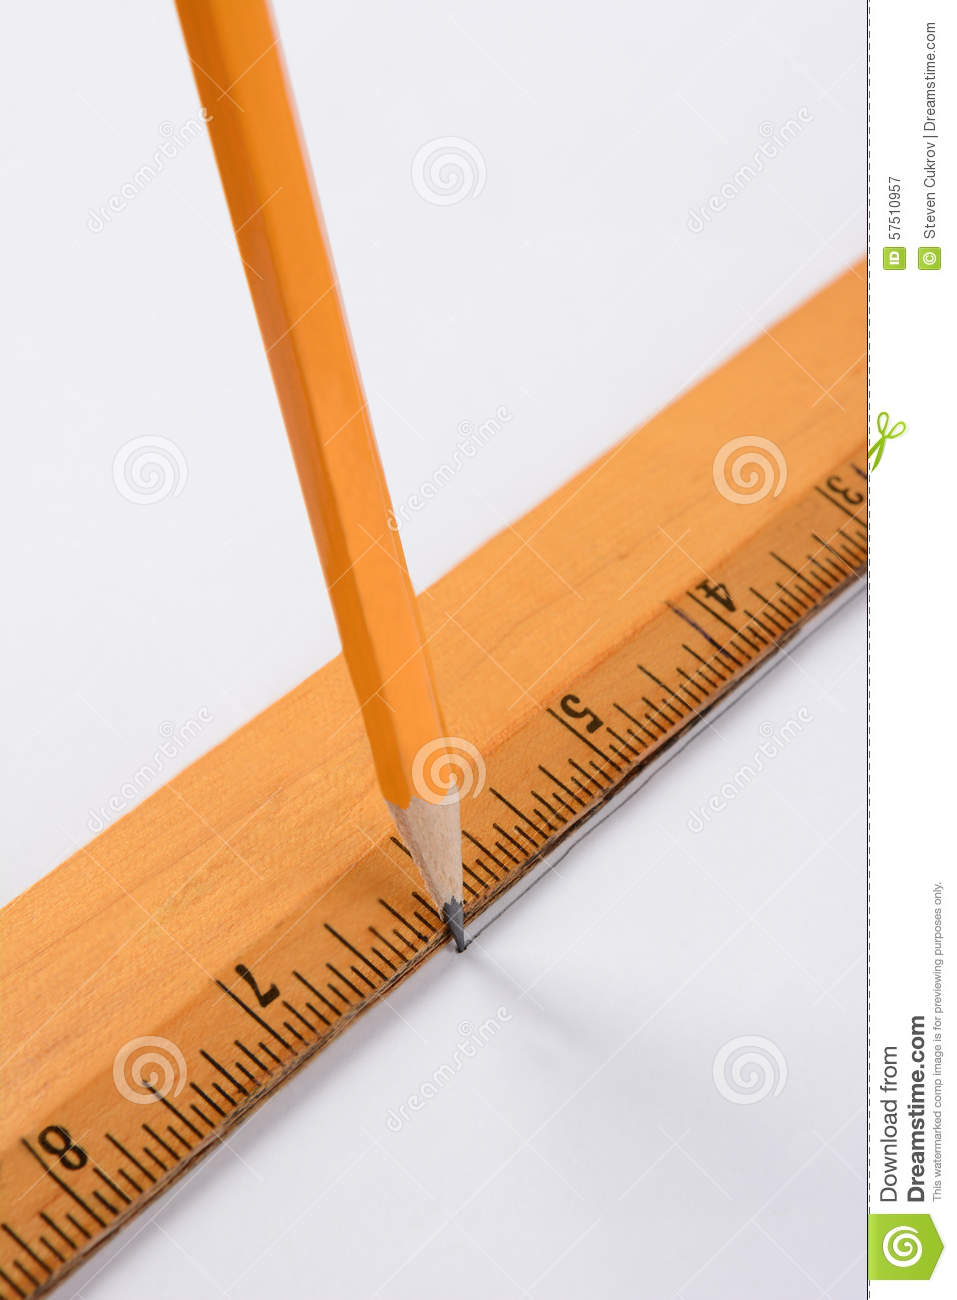 Drawing Lines With A Ruler Ks : Pencil and ruler stock image of closeup drawing